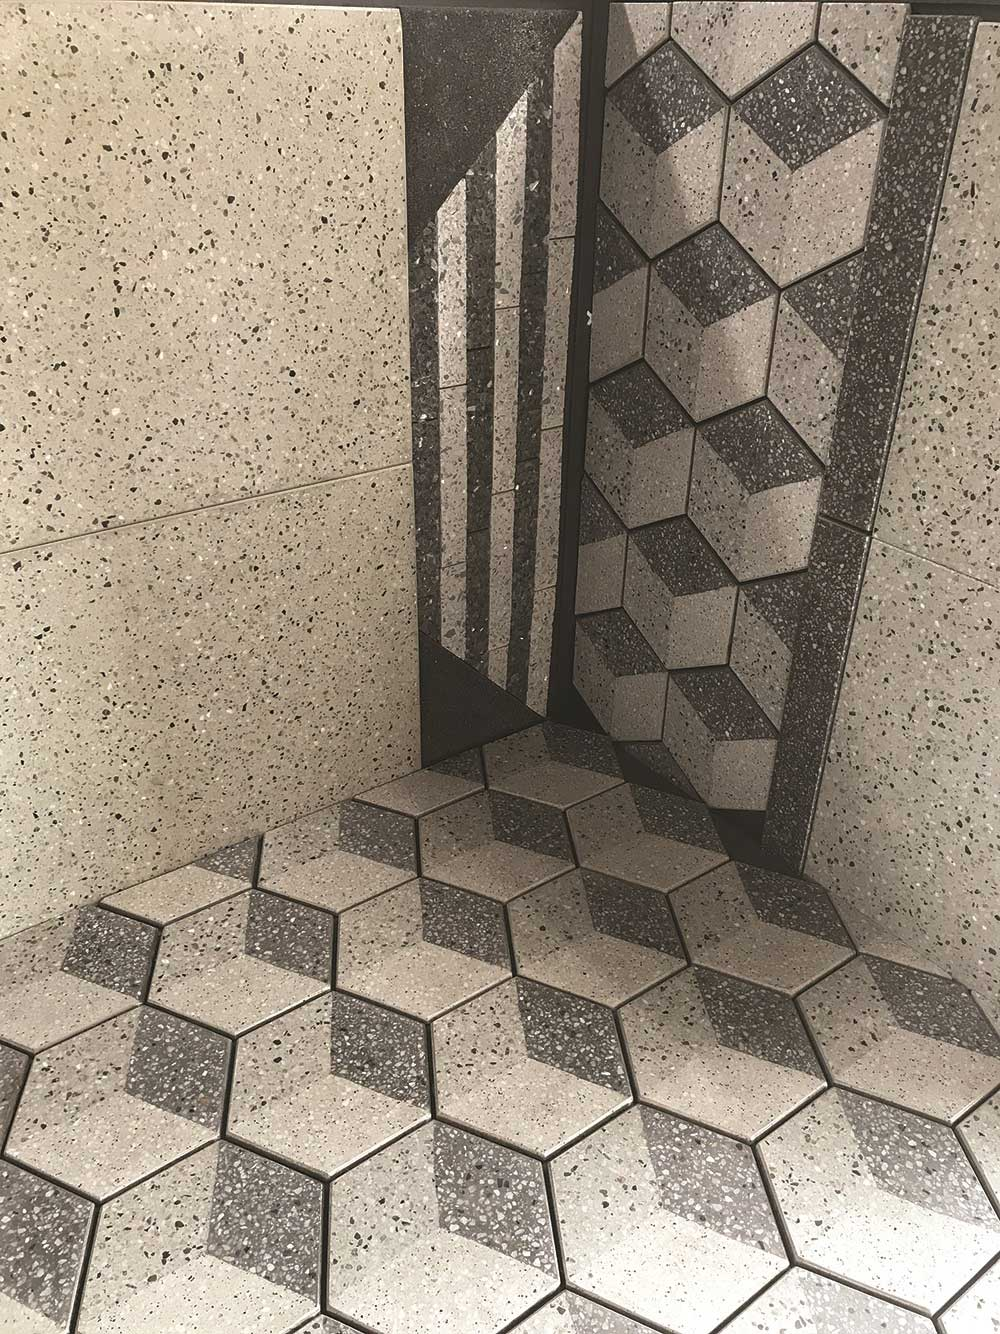 Hexagonal tiles with 3d effect by Union Tiles